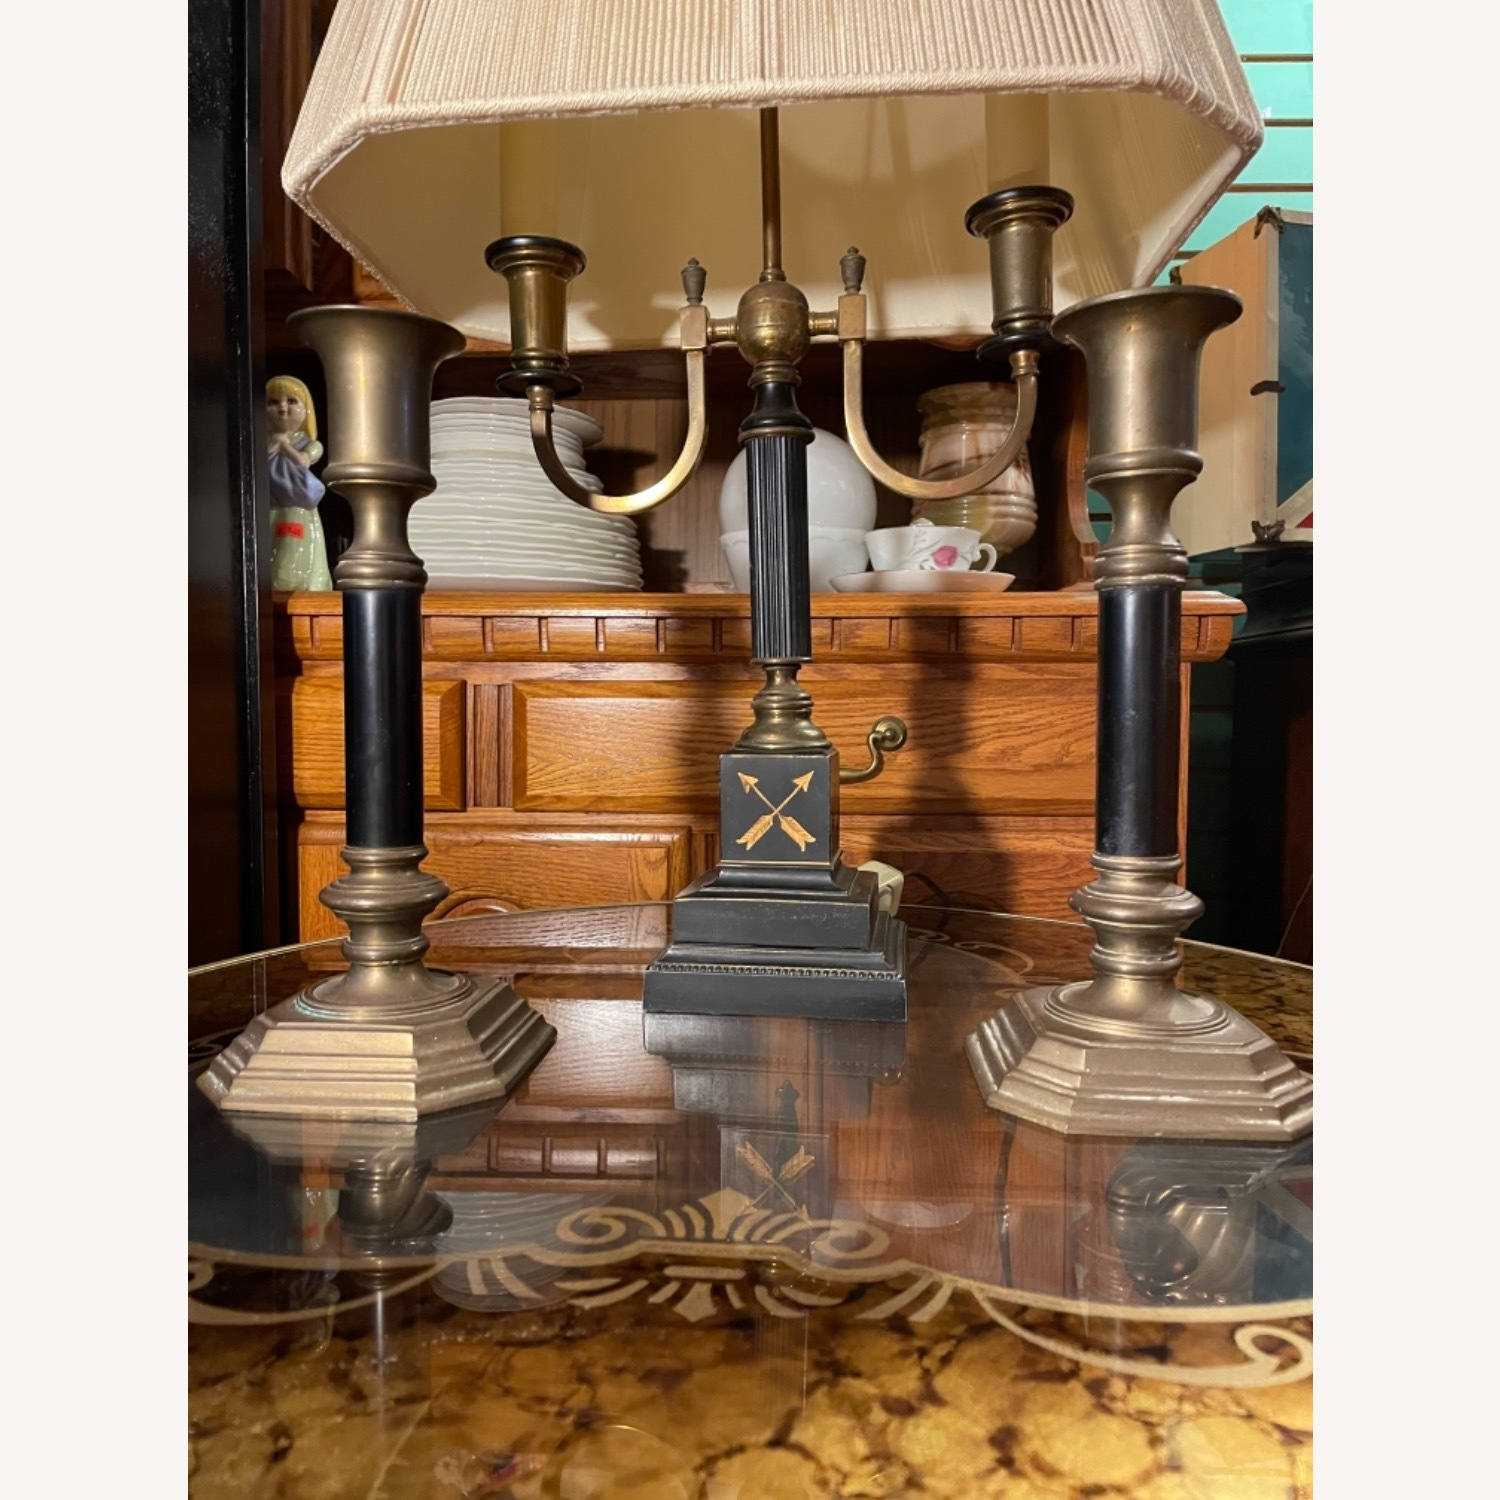 Antique 1930s Set of Brass Candle Sticks & Lamp - image-2